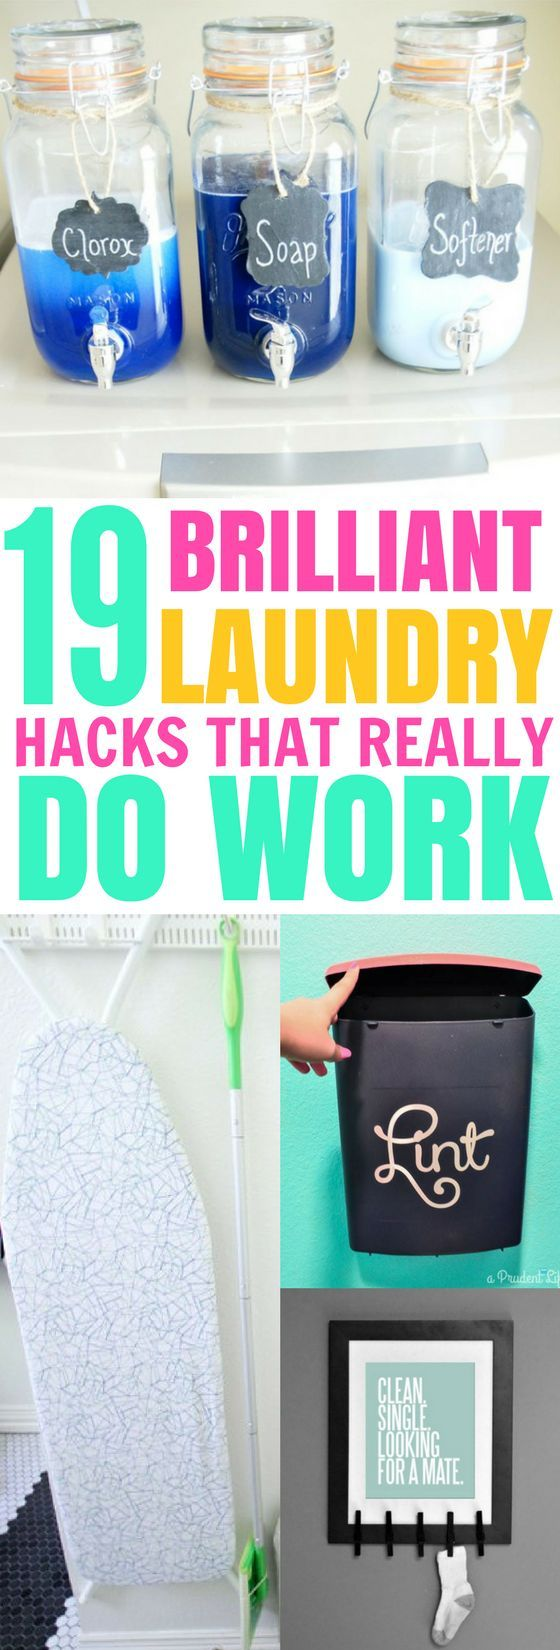 These 19 Laundry Room Hacks Are GENIUS! I love keeping a clean and organized laundry room, and these tips make it so easy!